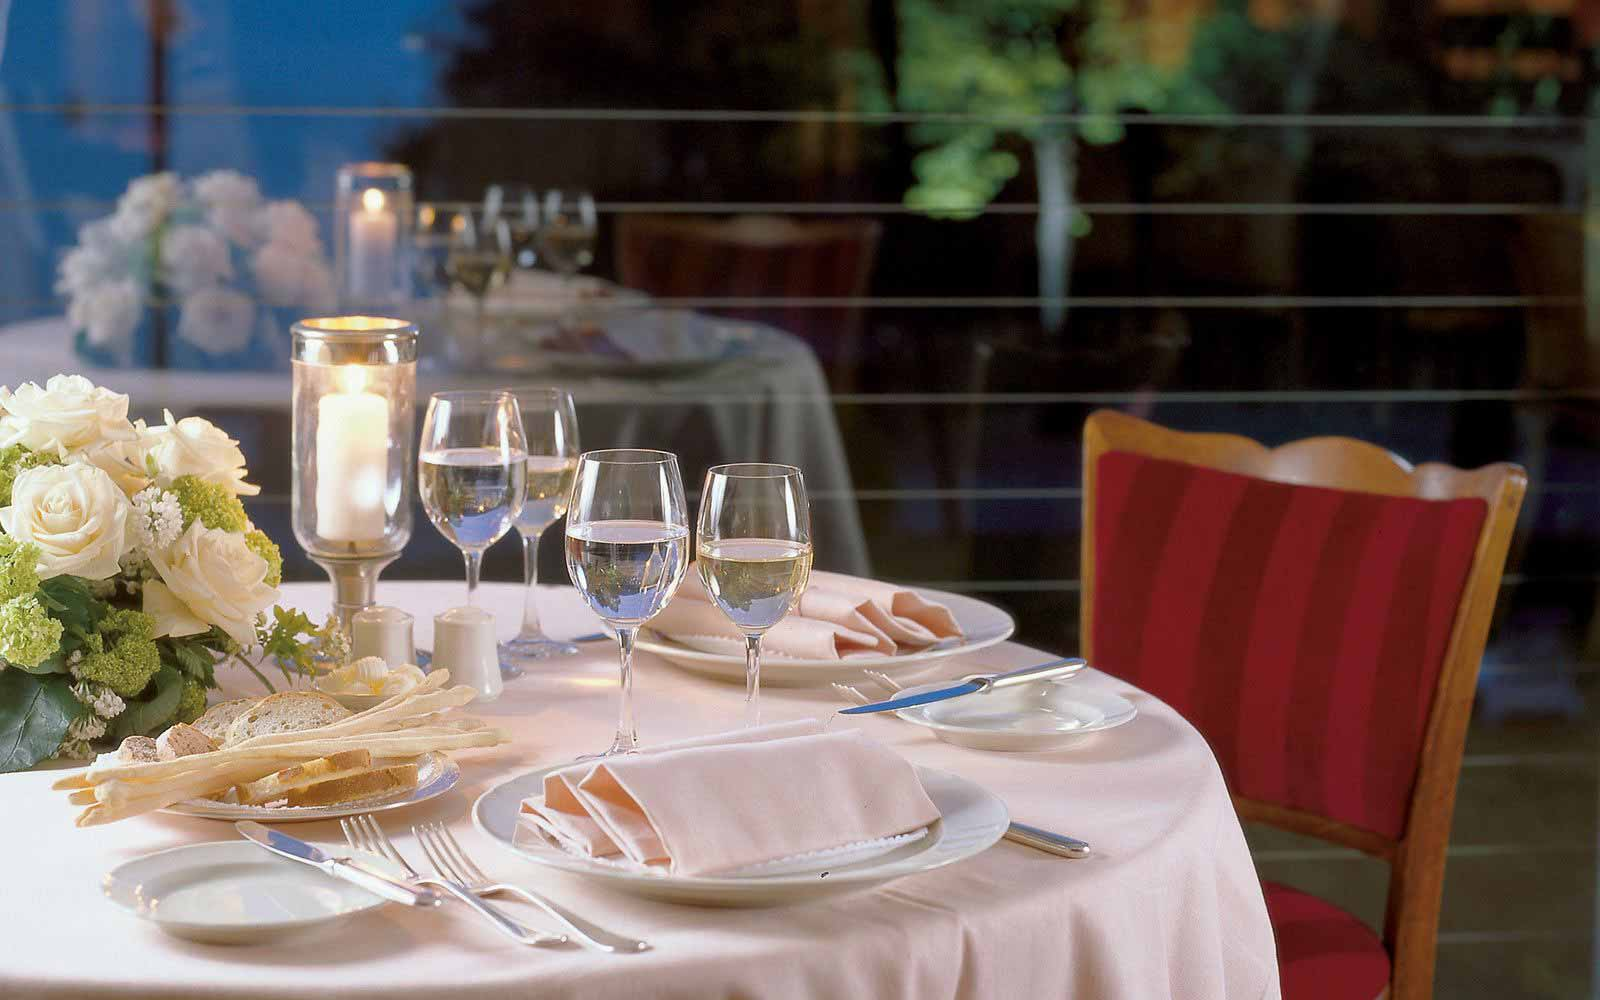 Romantic dinner at Grand Hotel Majestic